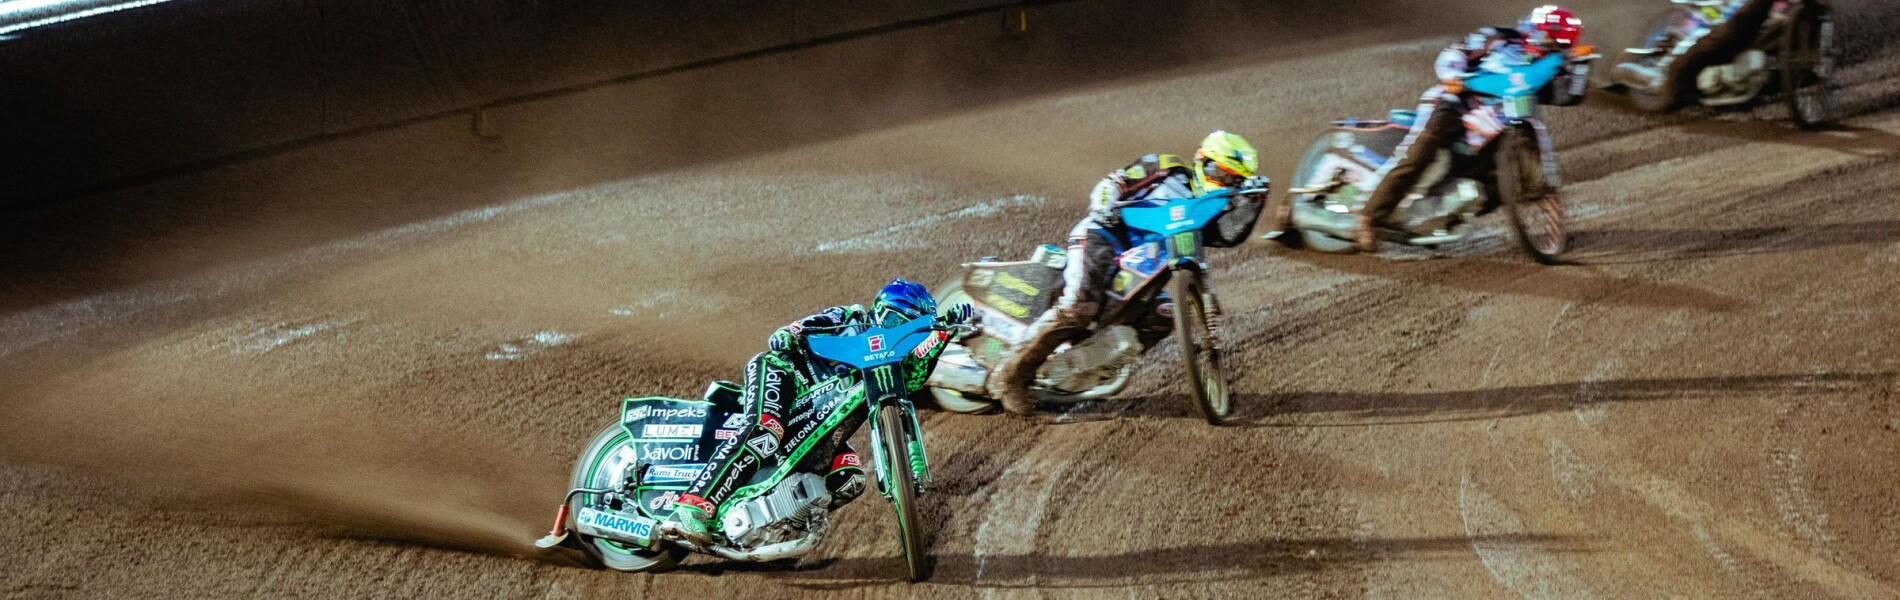 Images from the 2018 Scandinavian SGP in Malilla, Sweden